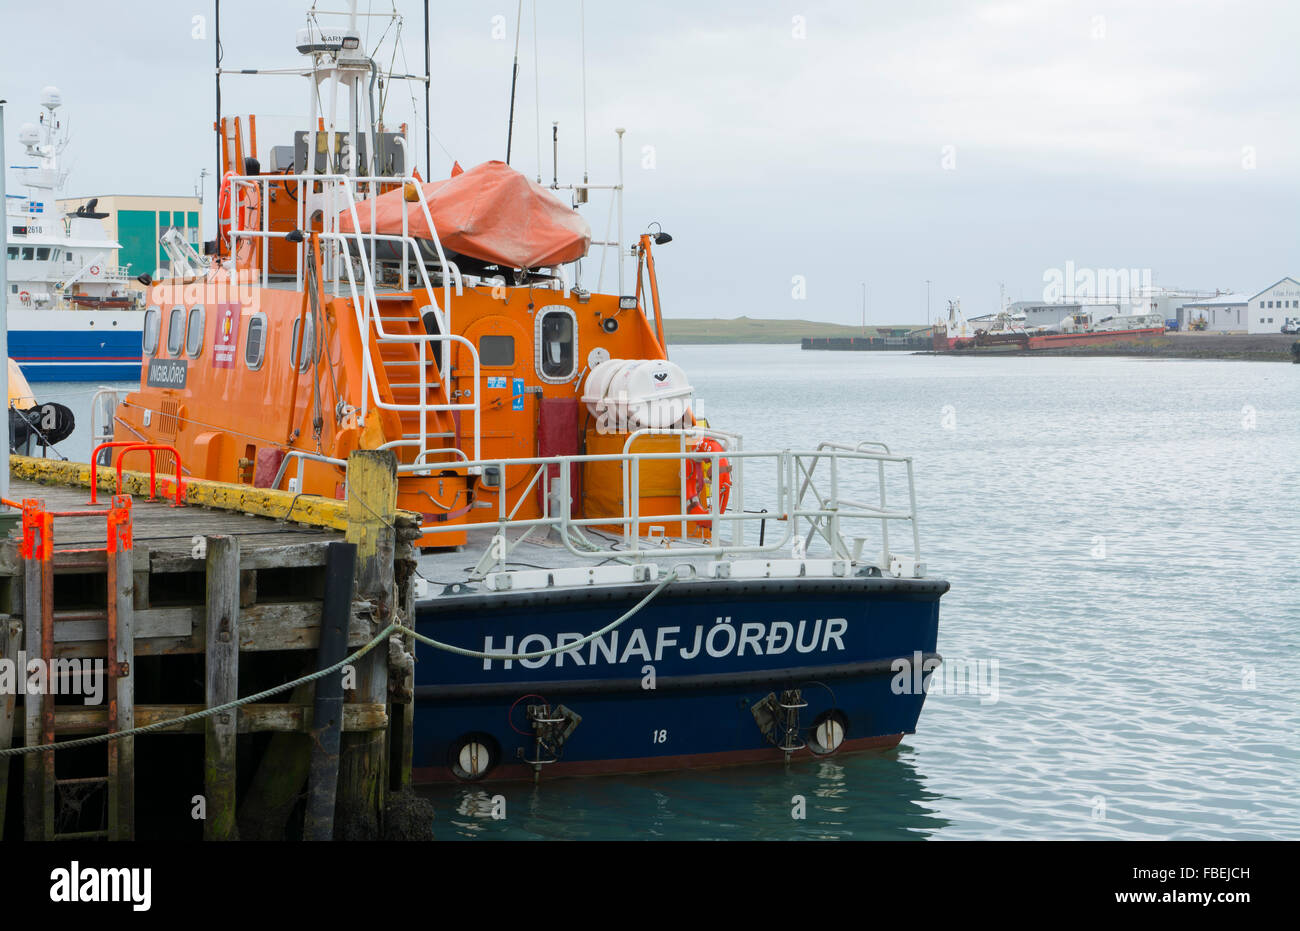 Iceland Hofn village fishing boating colorful ship abstrracts in marina port Stock Photo